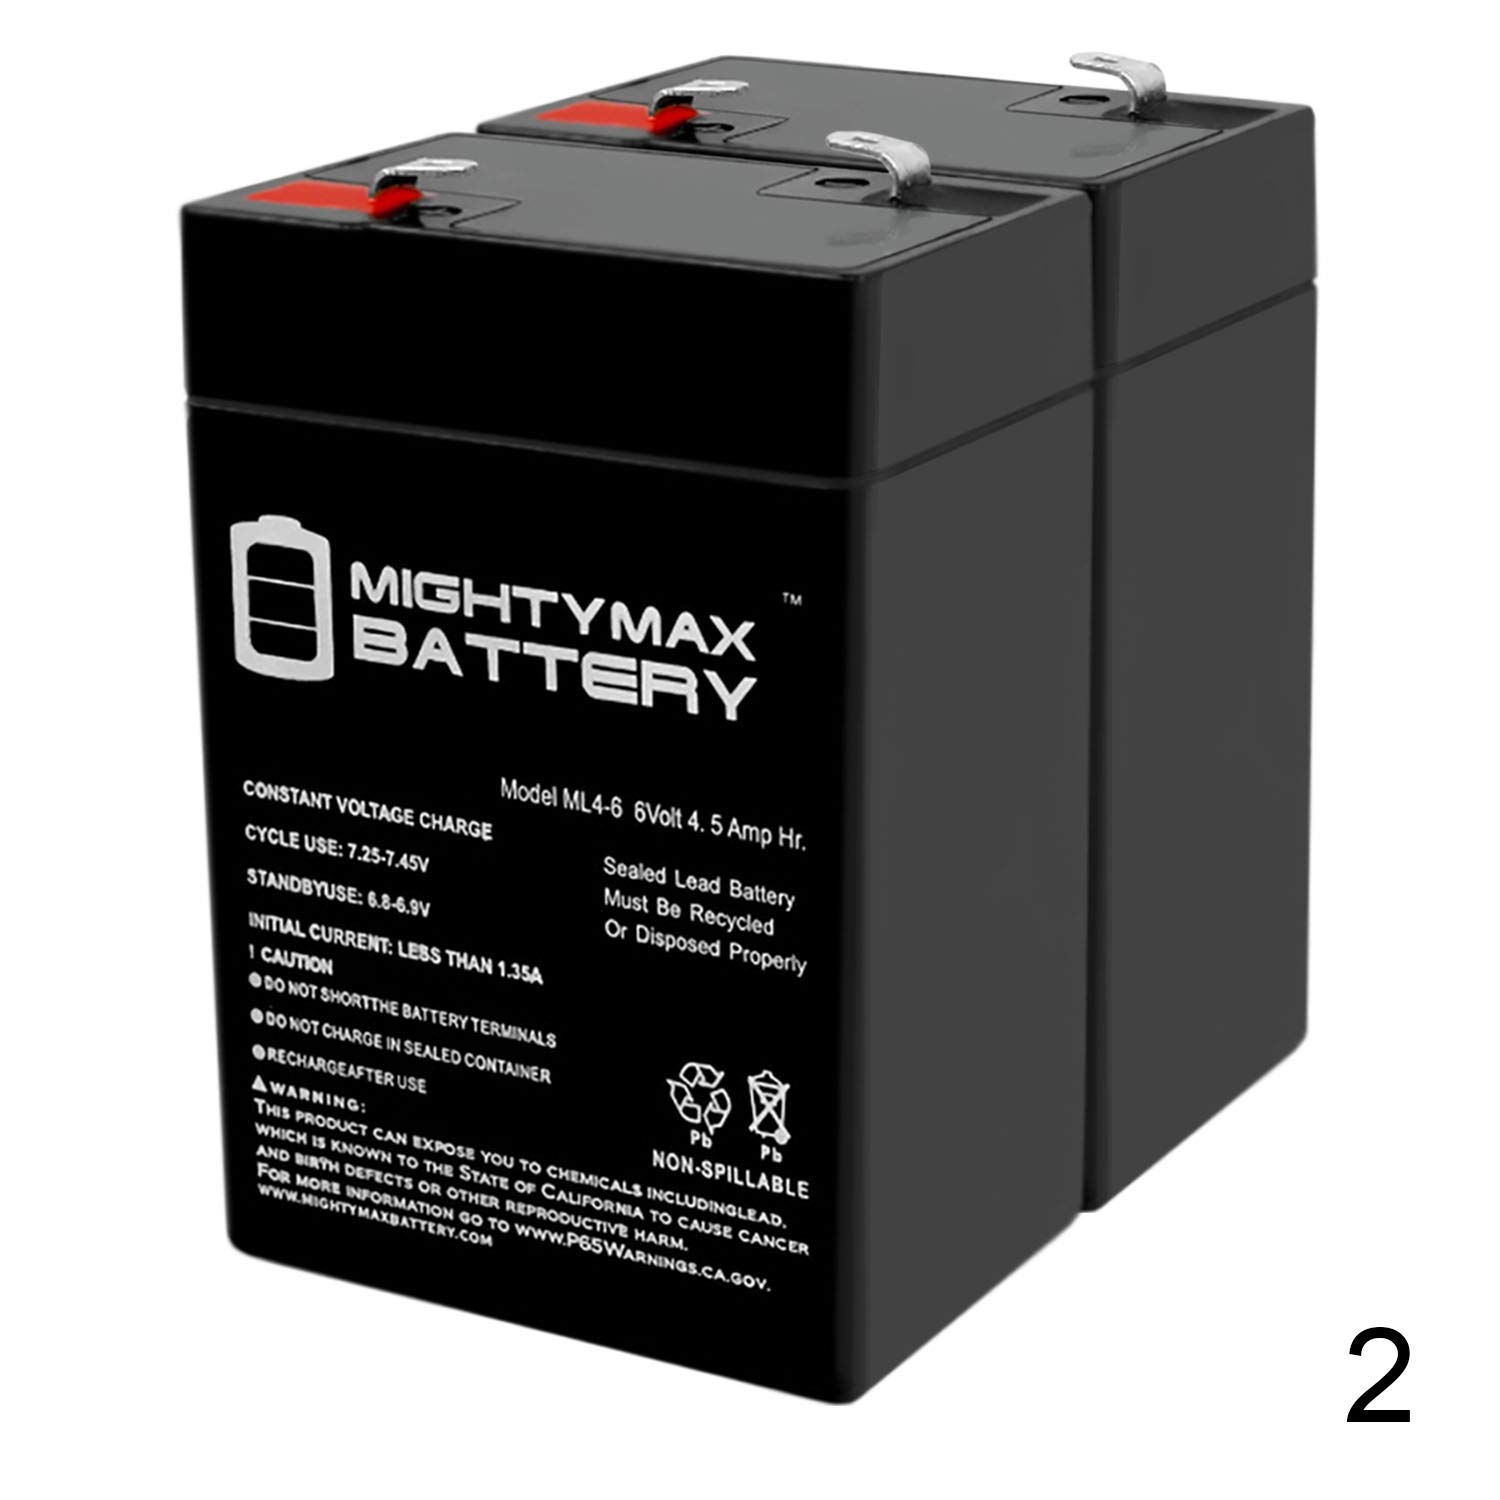 Mighty Max Battery ML4-6 - 6V 4.5AH Replacement Battery for YT-645 with F1 Terminal - 2 Pack Brand Product by Mighty Max Battery